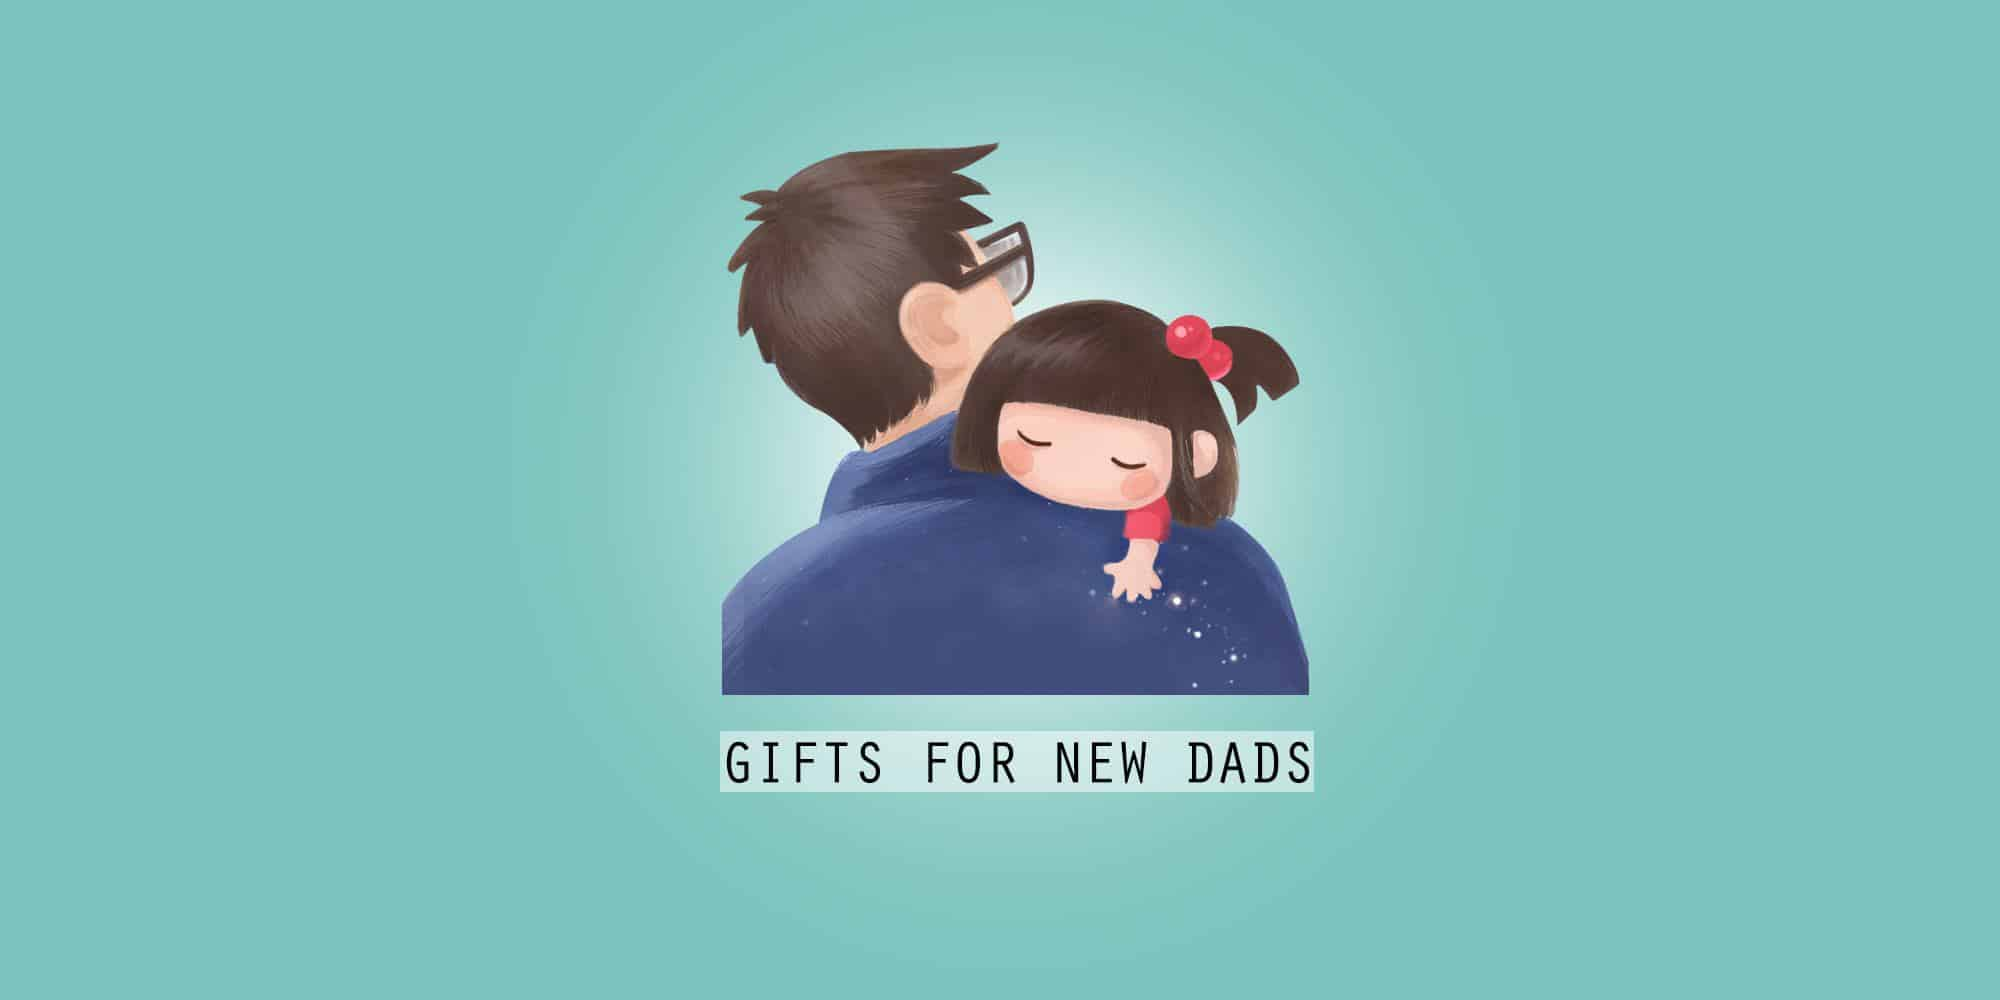 35 Best Gifts for New Dads and Dads-to-Be in 2020